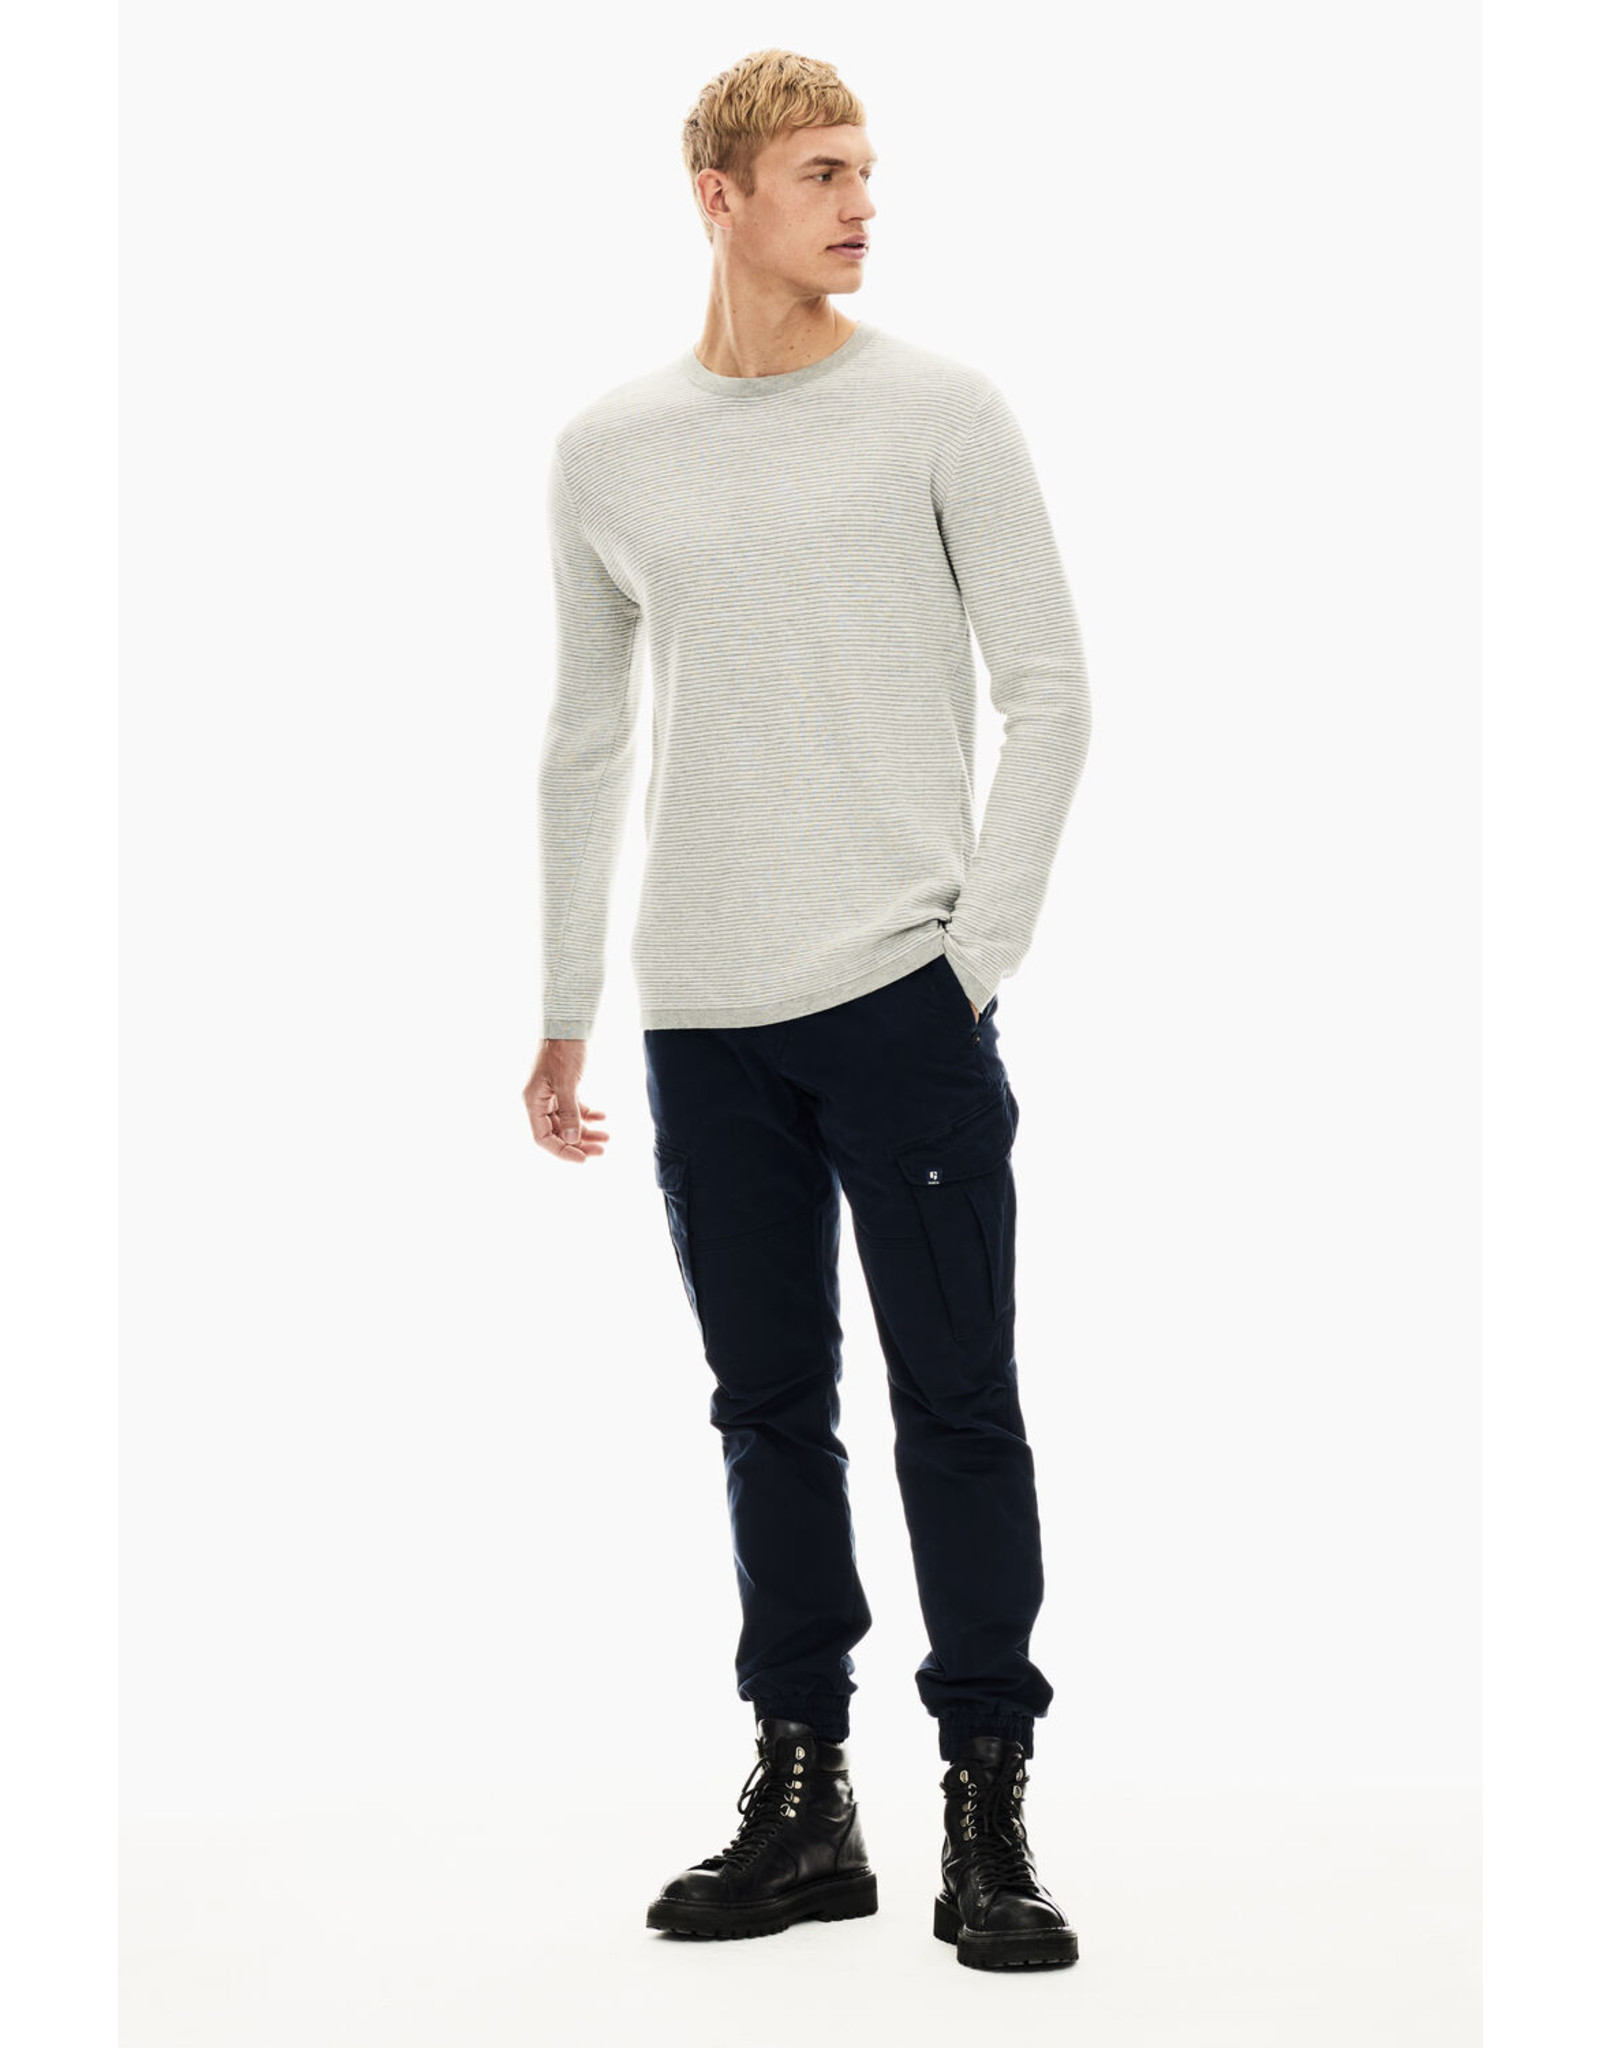 Garcia Garcia T01242 Horizontal Knit Sweater